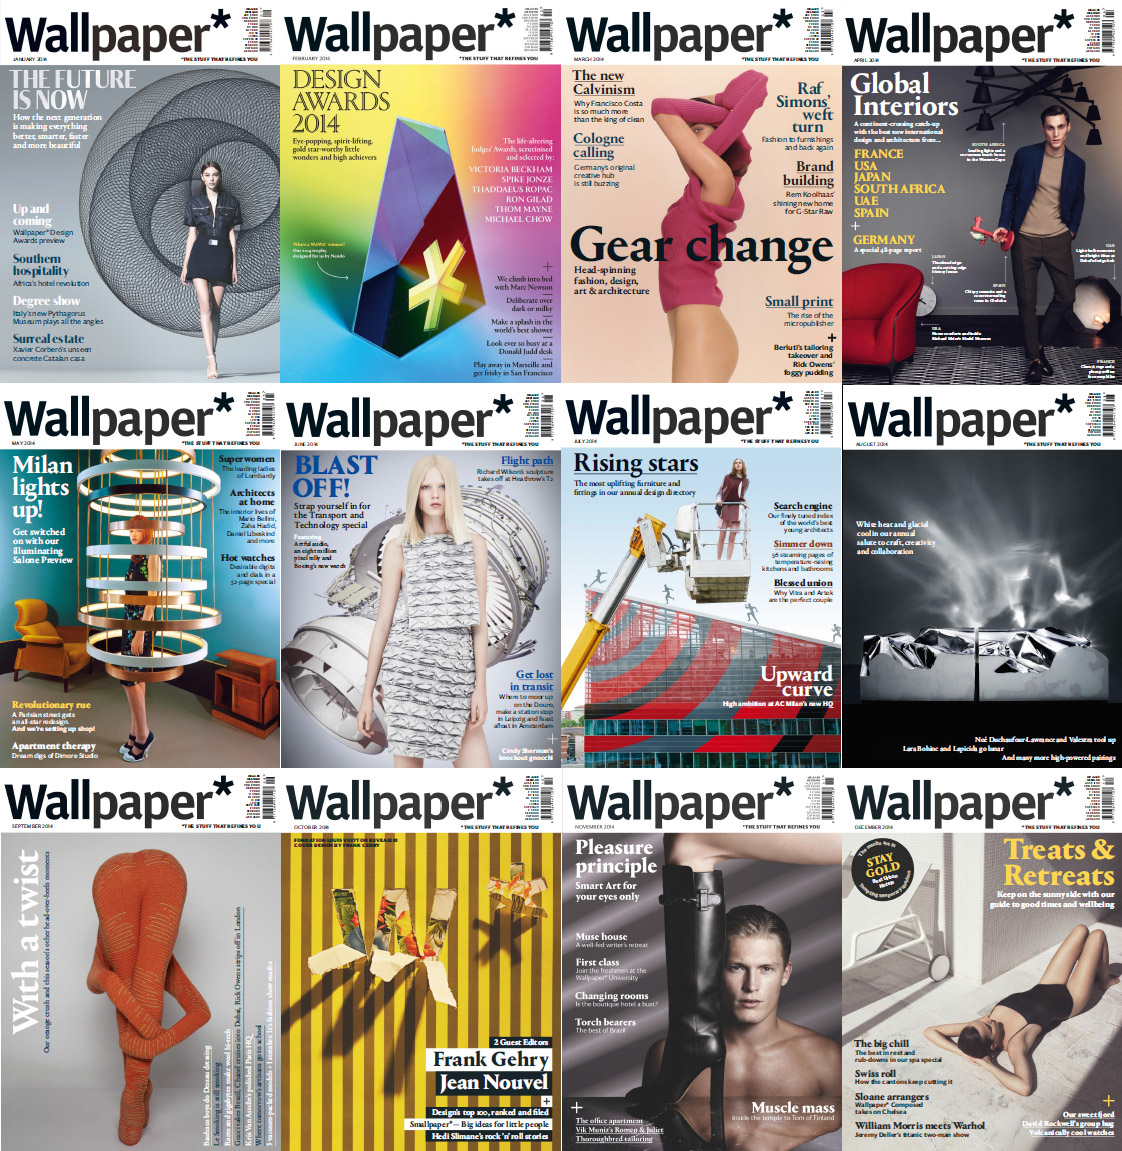 Wallpaper Magazine - 2014 Full Year Issues Collection free download